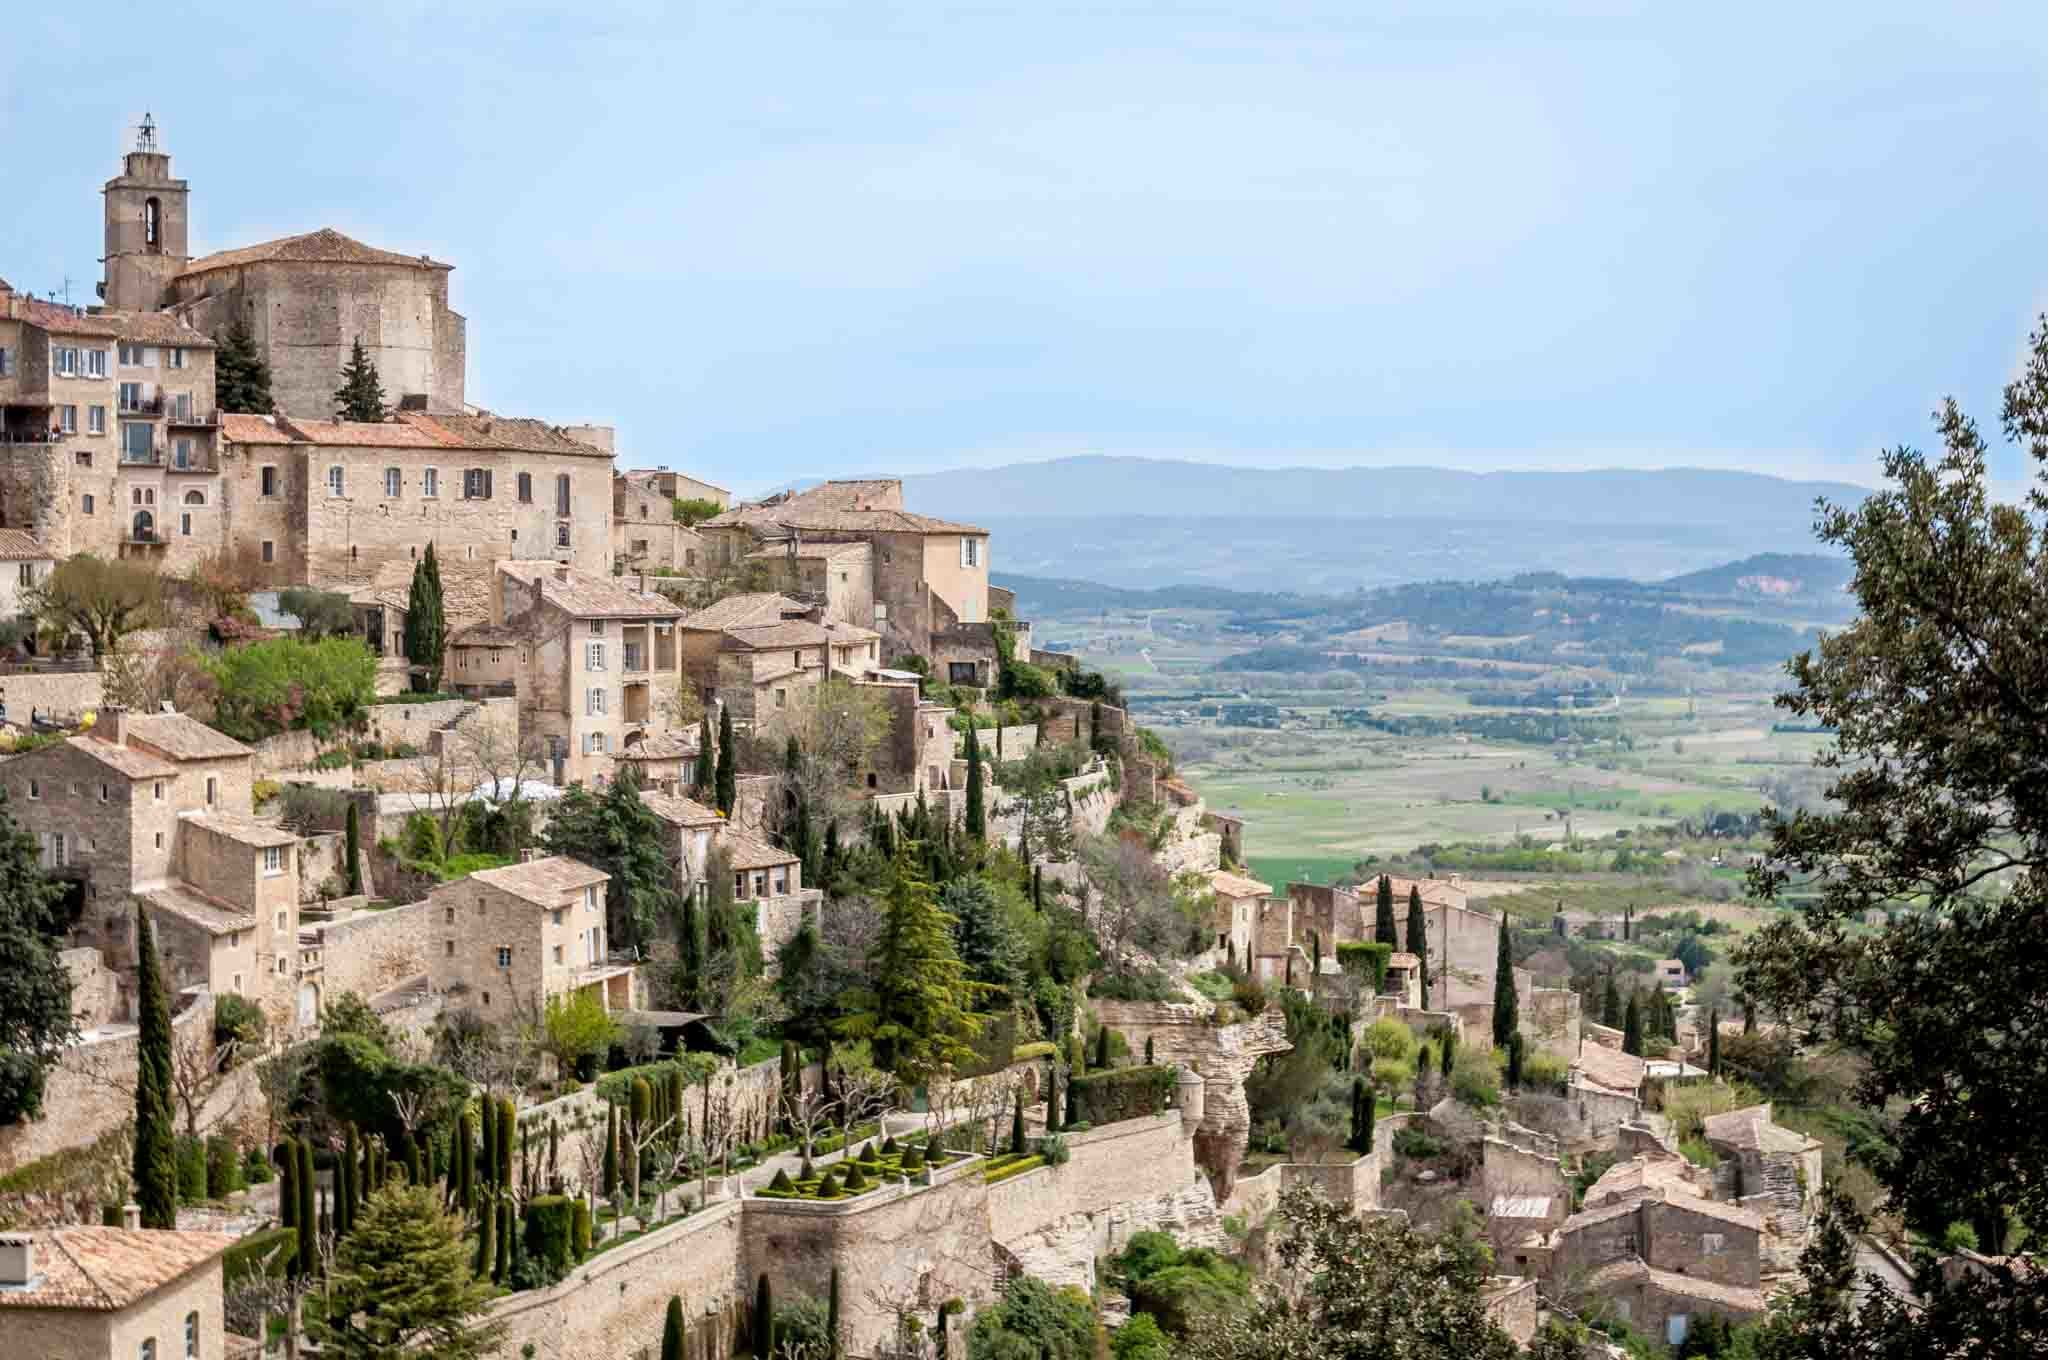 Stone buildings on a mountainside descending to a valley in Gordes